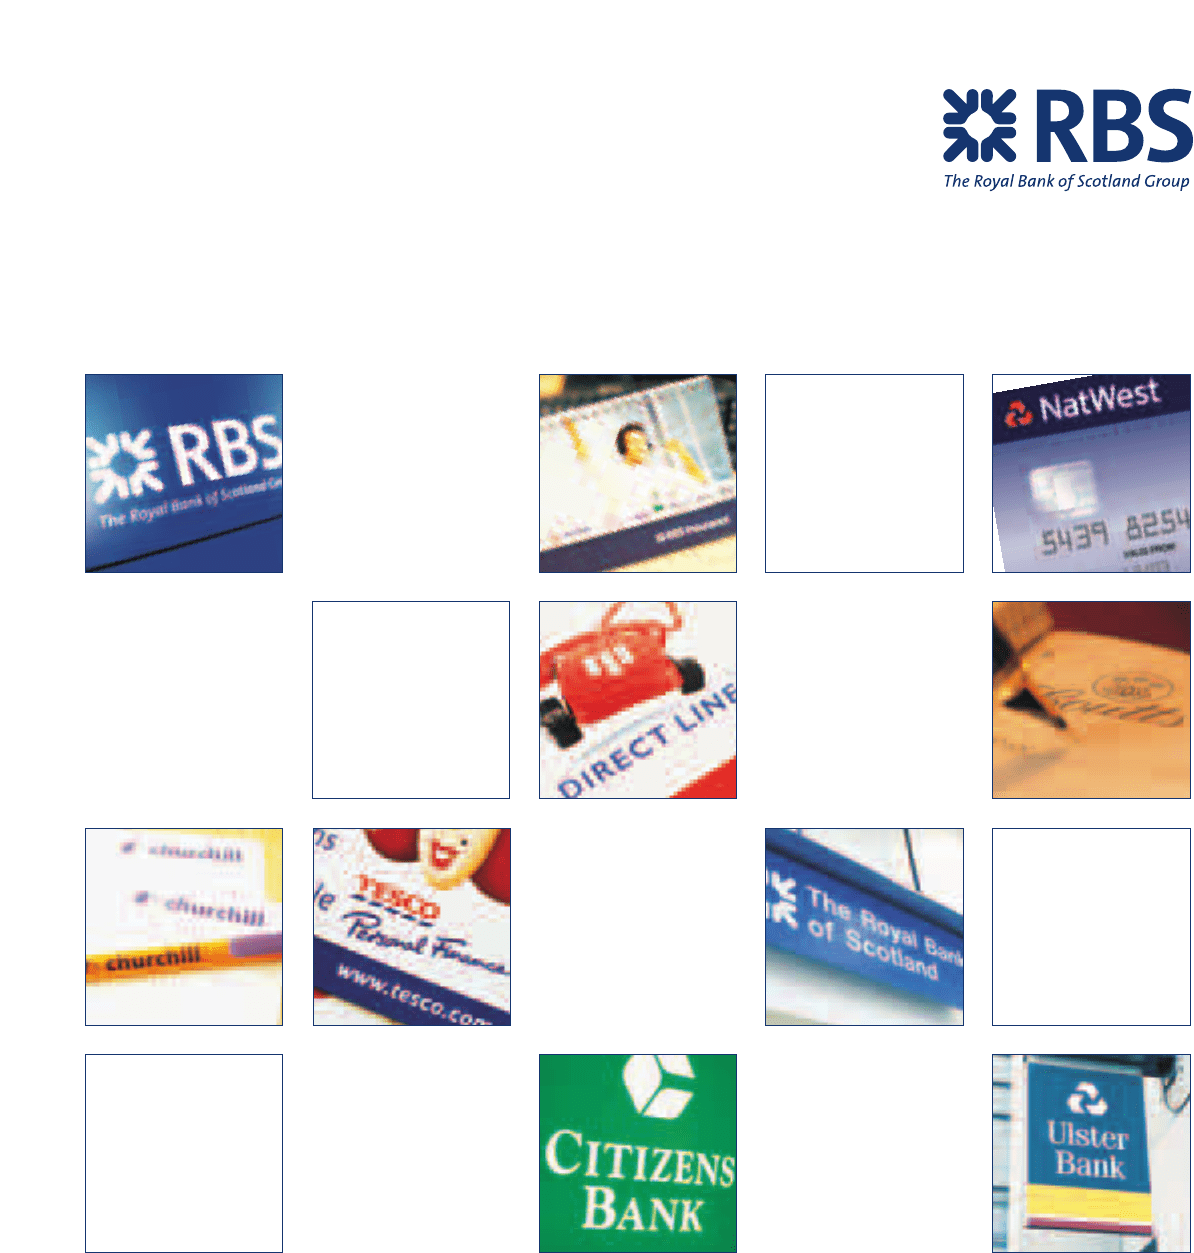 Rbs 2003 Annual Report Download